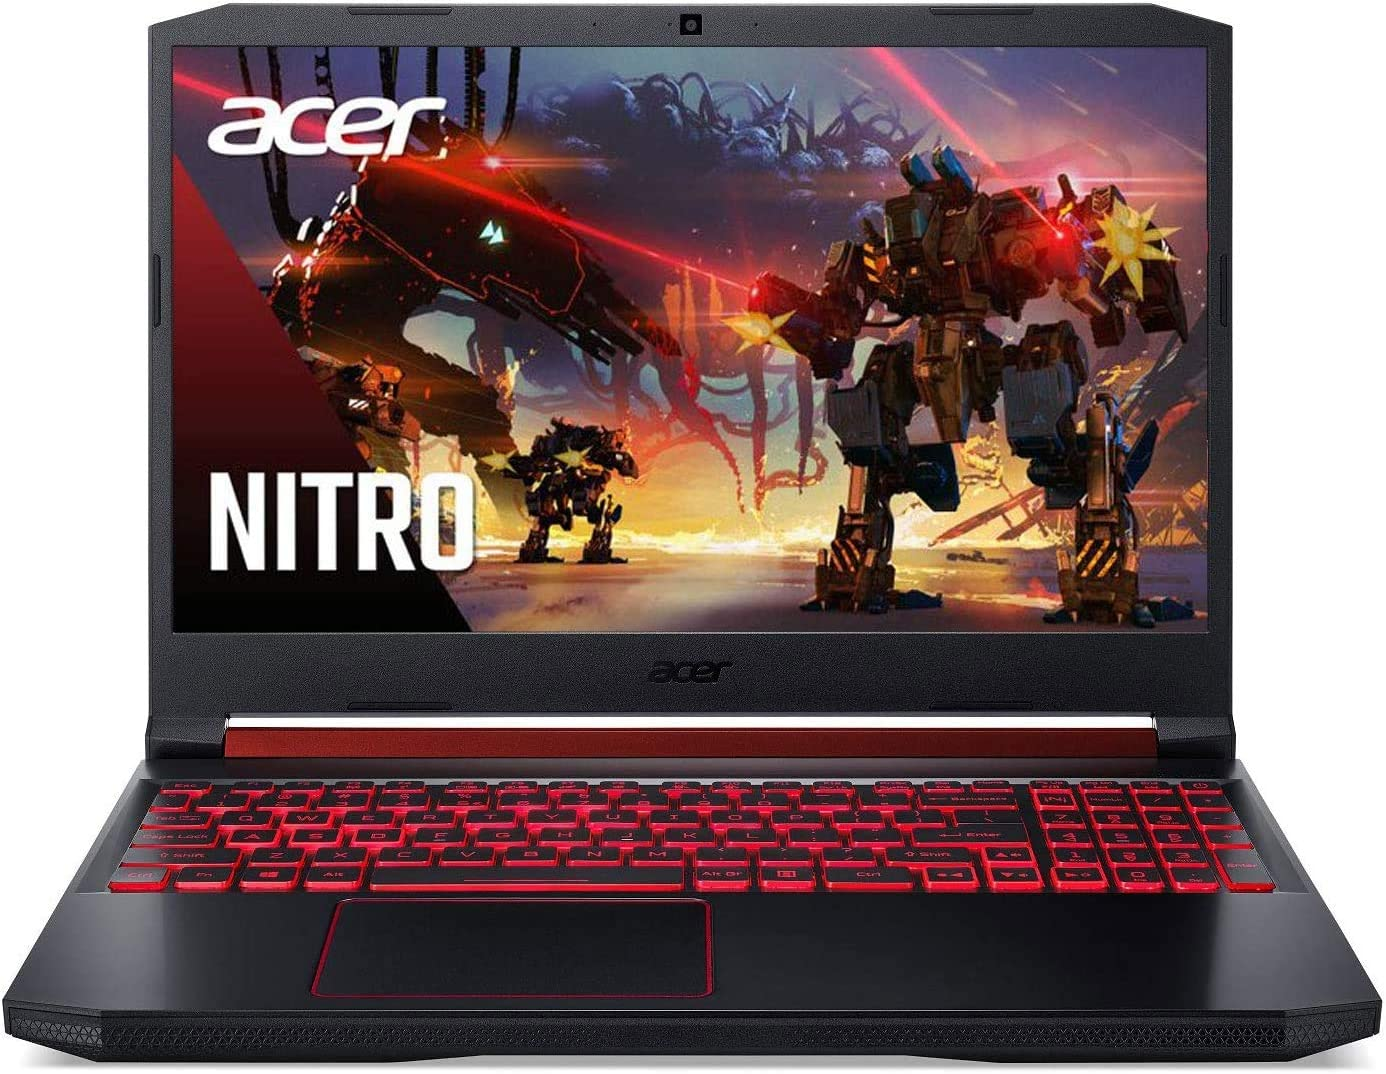 "Acer Nitro 5 Gaming Laptop, 9th Gen Intel Core i5-9300H, NVIDIA GeForce GTX 1650, 15.6"" Full HD IPS Display, 8GB DDR4, 256GB SSD + 1TB HDD, Wi-Fi 6, Backlit Keyboard, Win10"